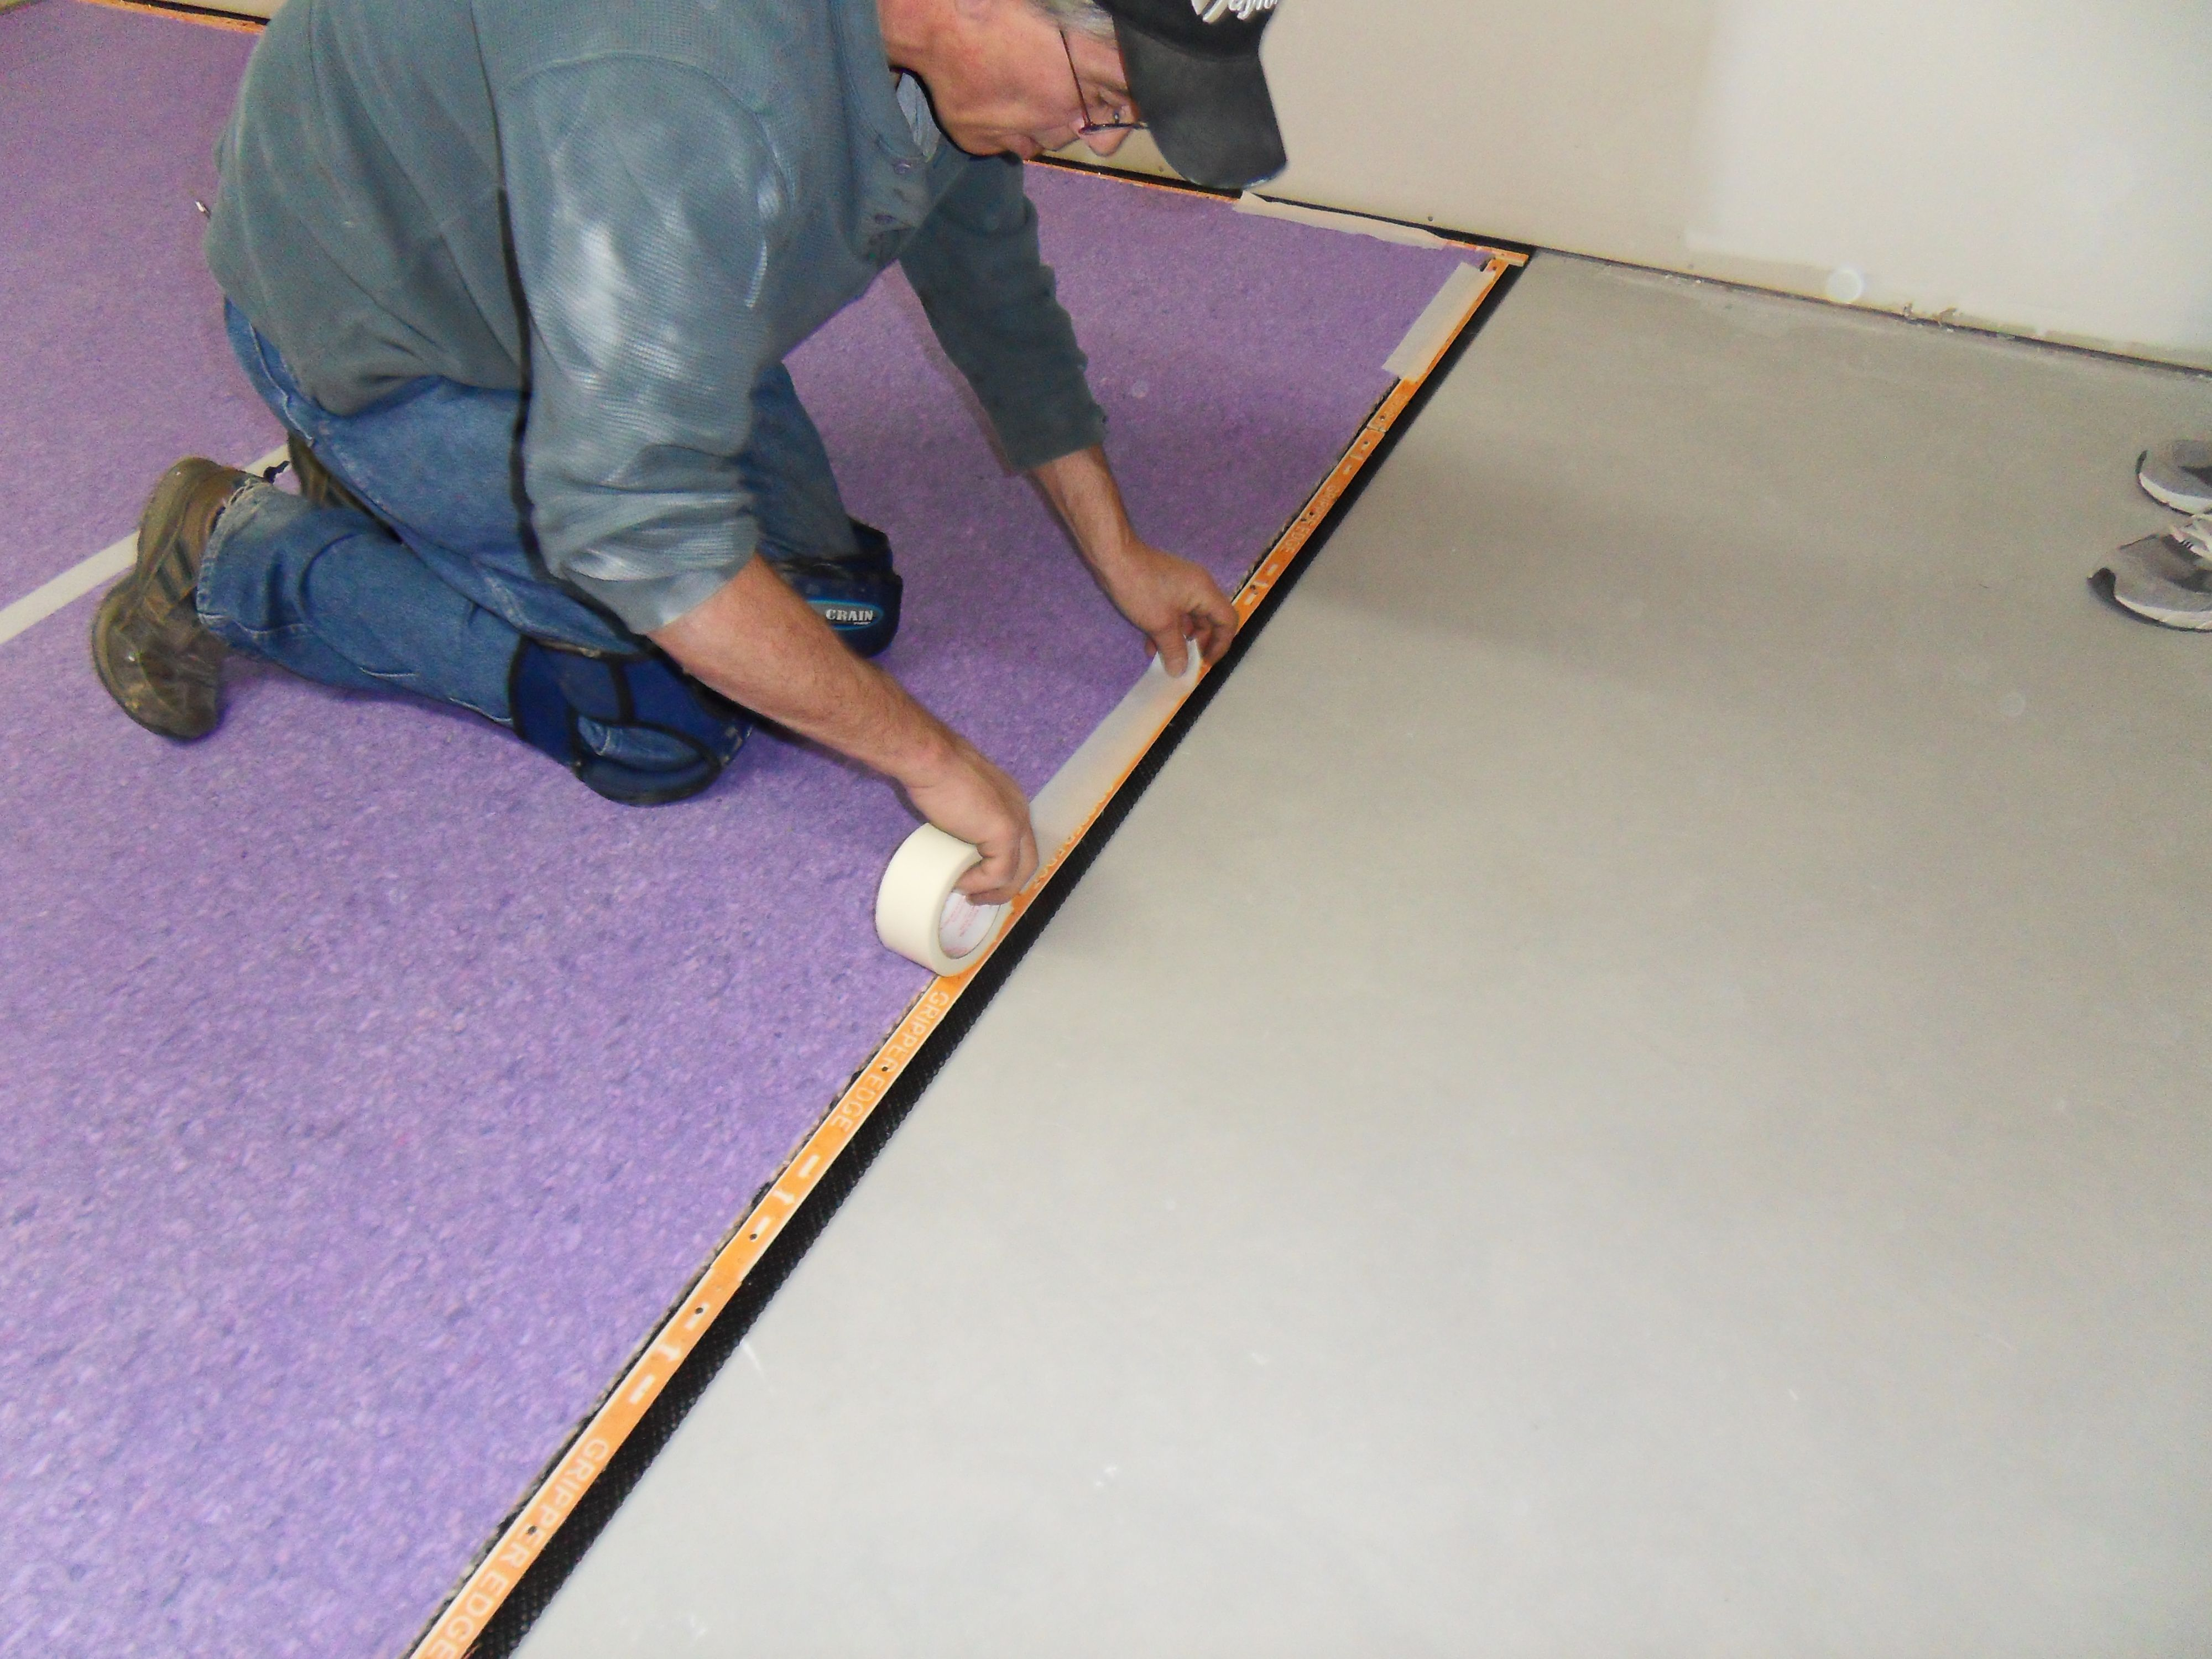 SUPERSEAL's Carpet Subfloor - Taping the carpet pad in place.